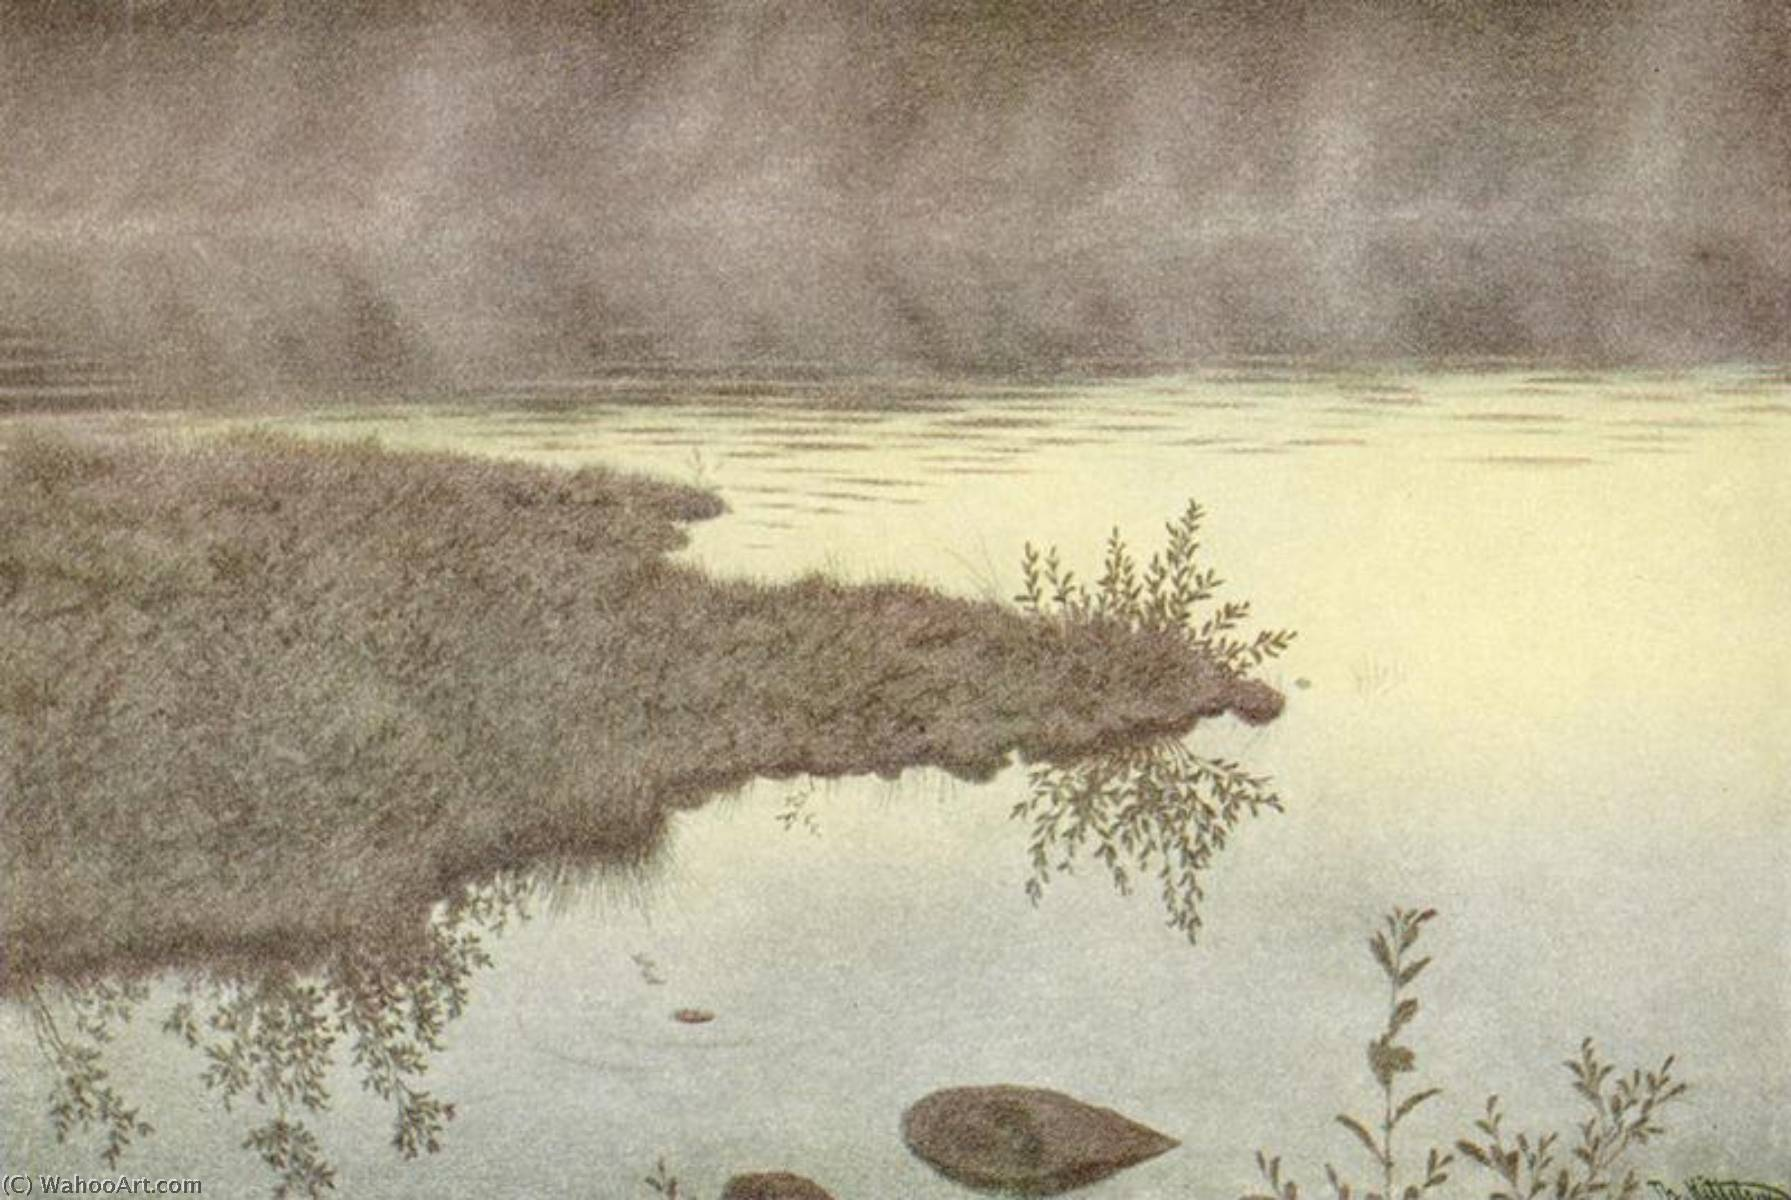 Mist on the Water by Theodor Kittelsen (1857-1914) | Art Reproduction | WahooArt.com